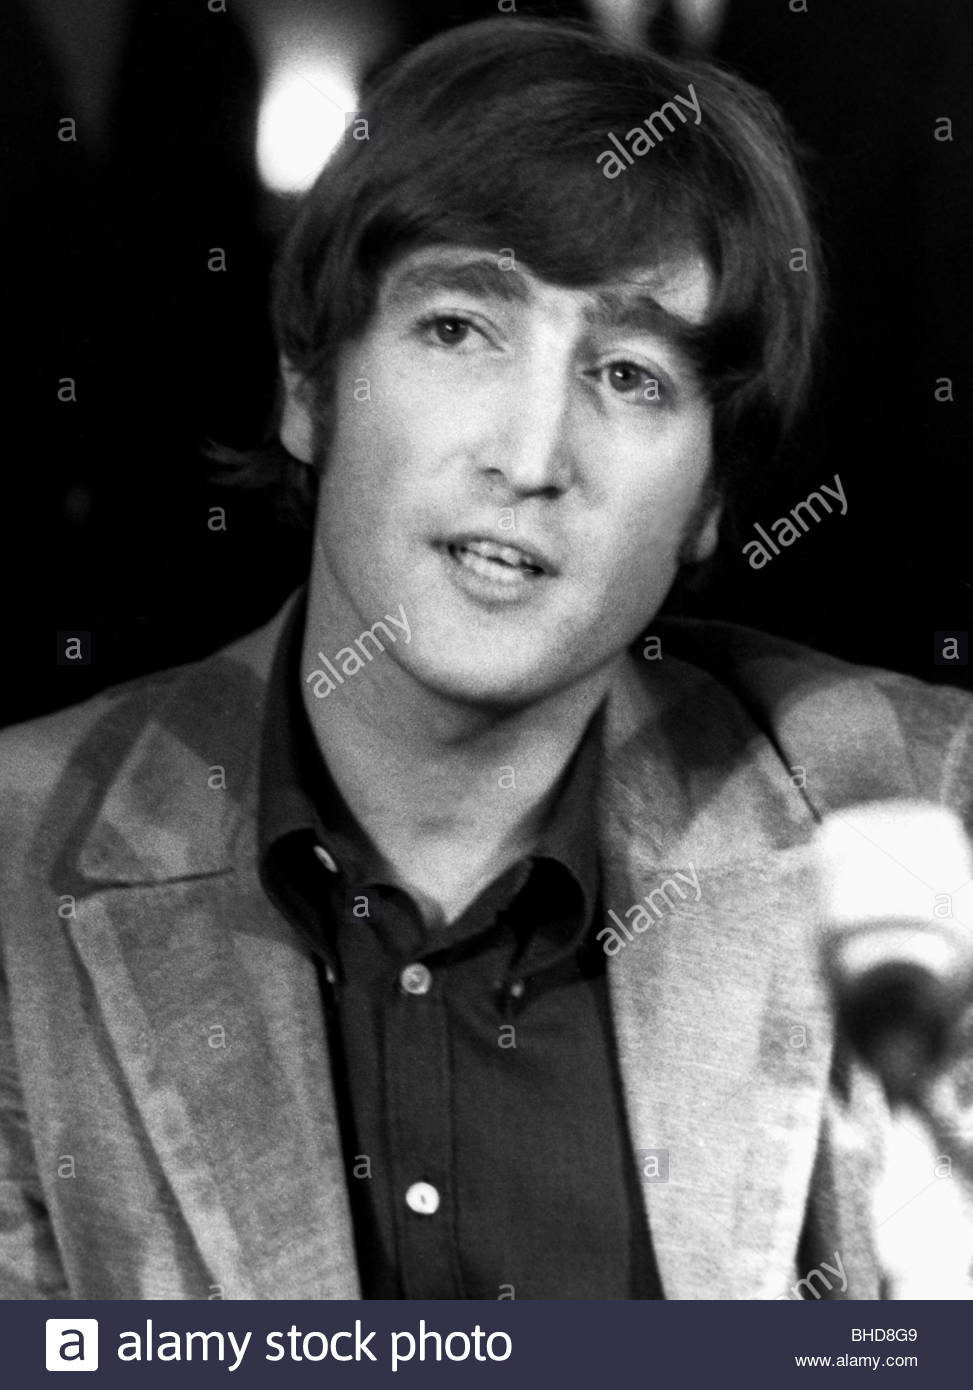 John Lennon Portrait Stock Photos